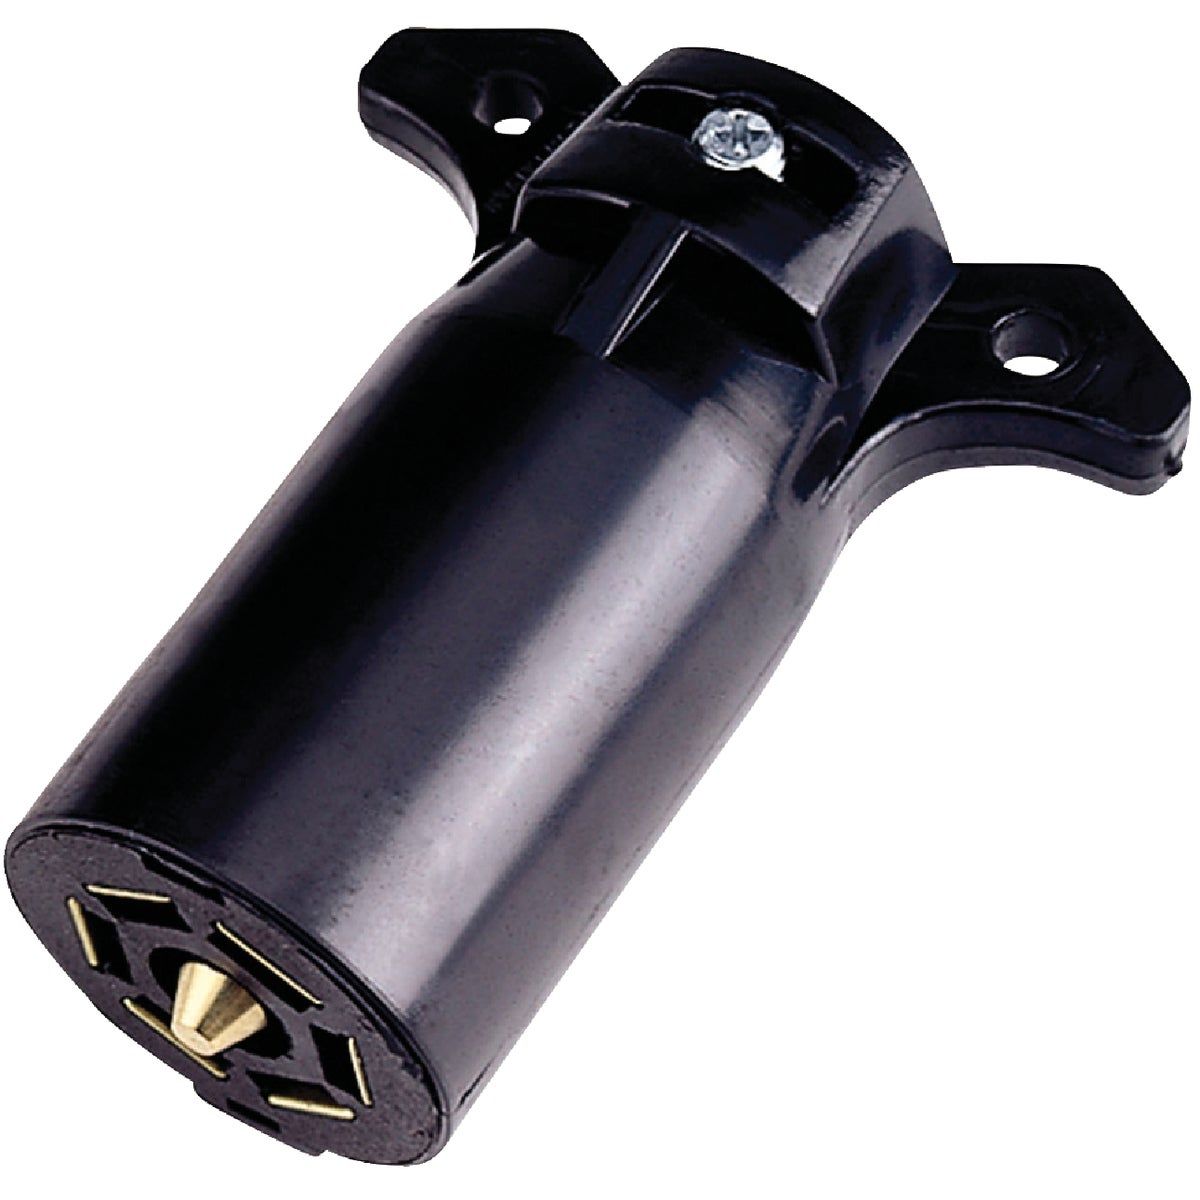 TRAILER END PLUG - 48505 by Hopkins Mfg Corp